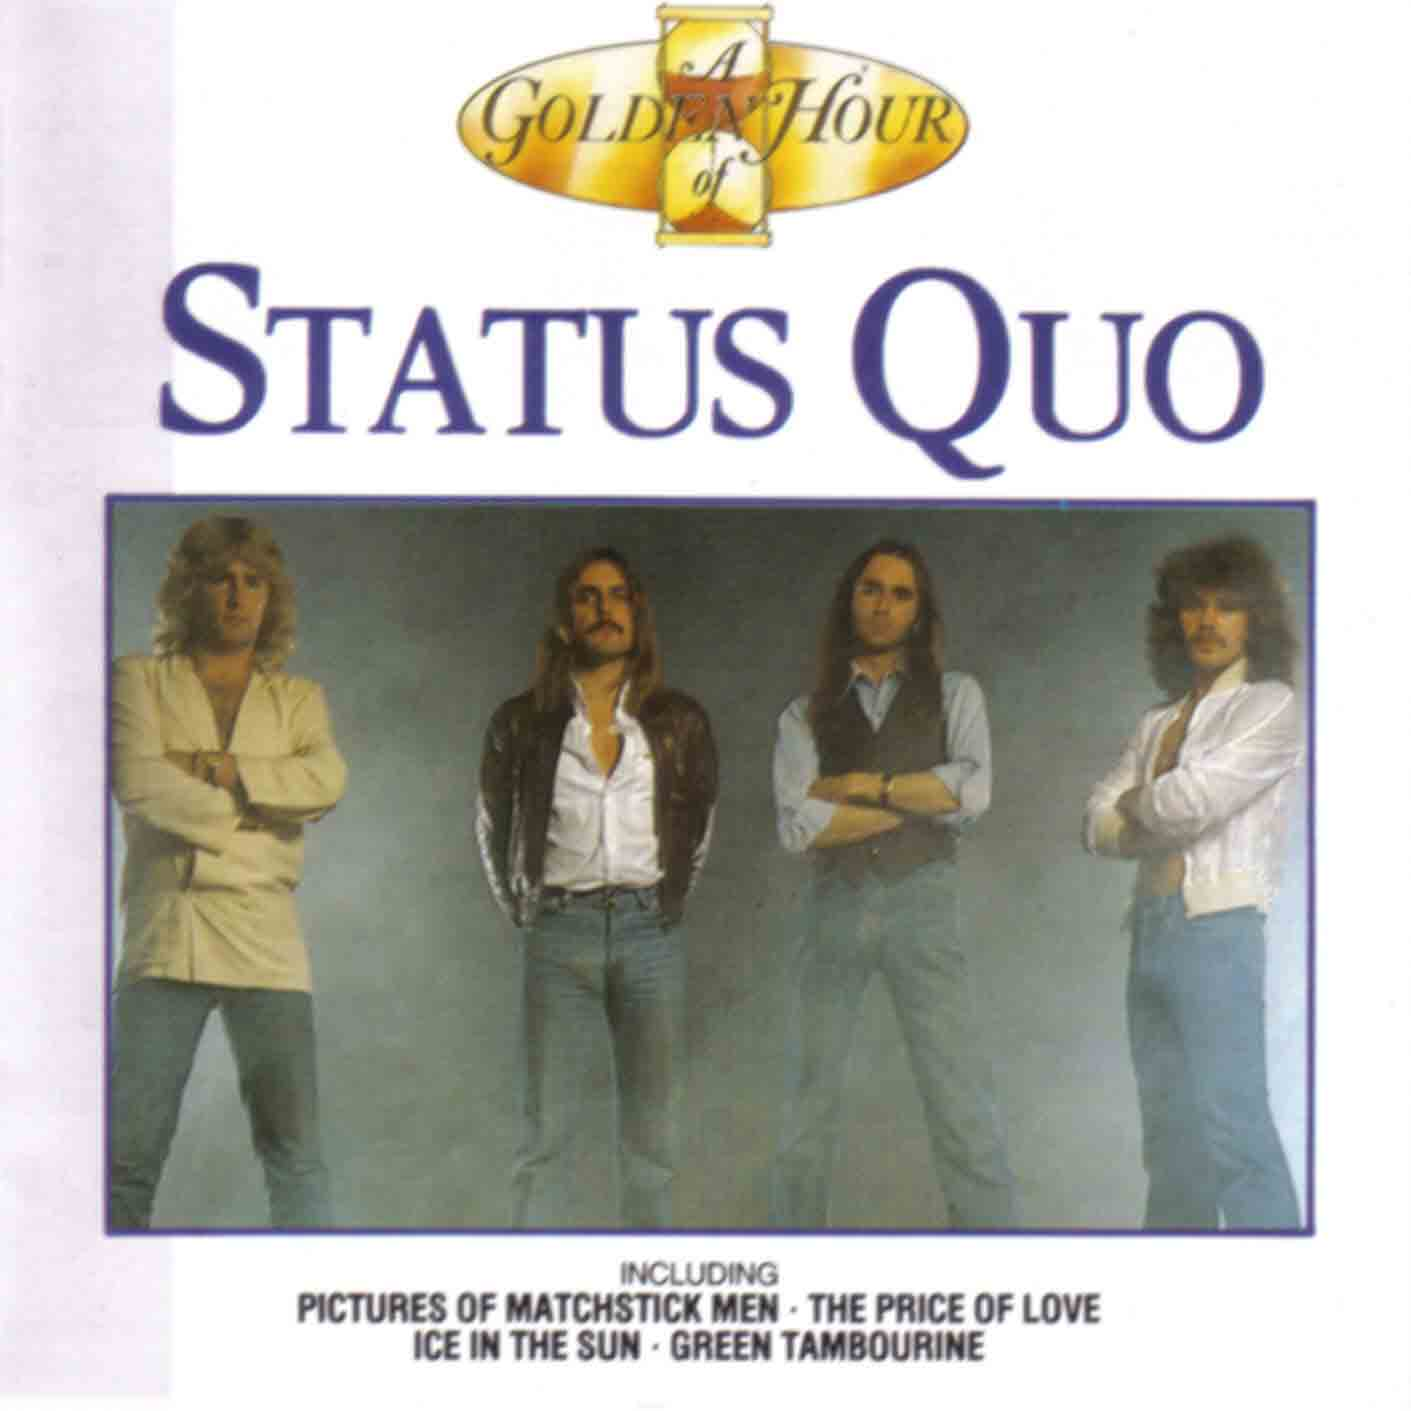 Cover der Status Quo Kompilation 'A Golden Hour of Status Quo' - KGHCD110